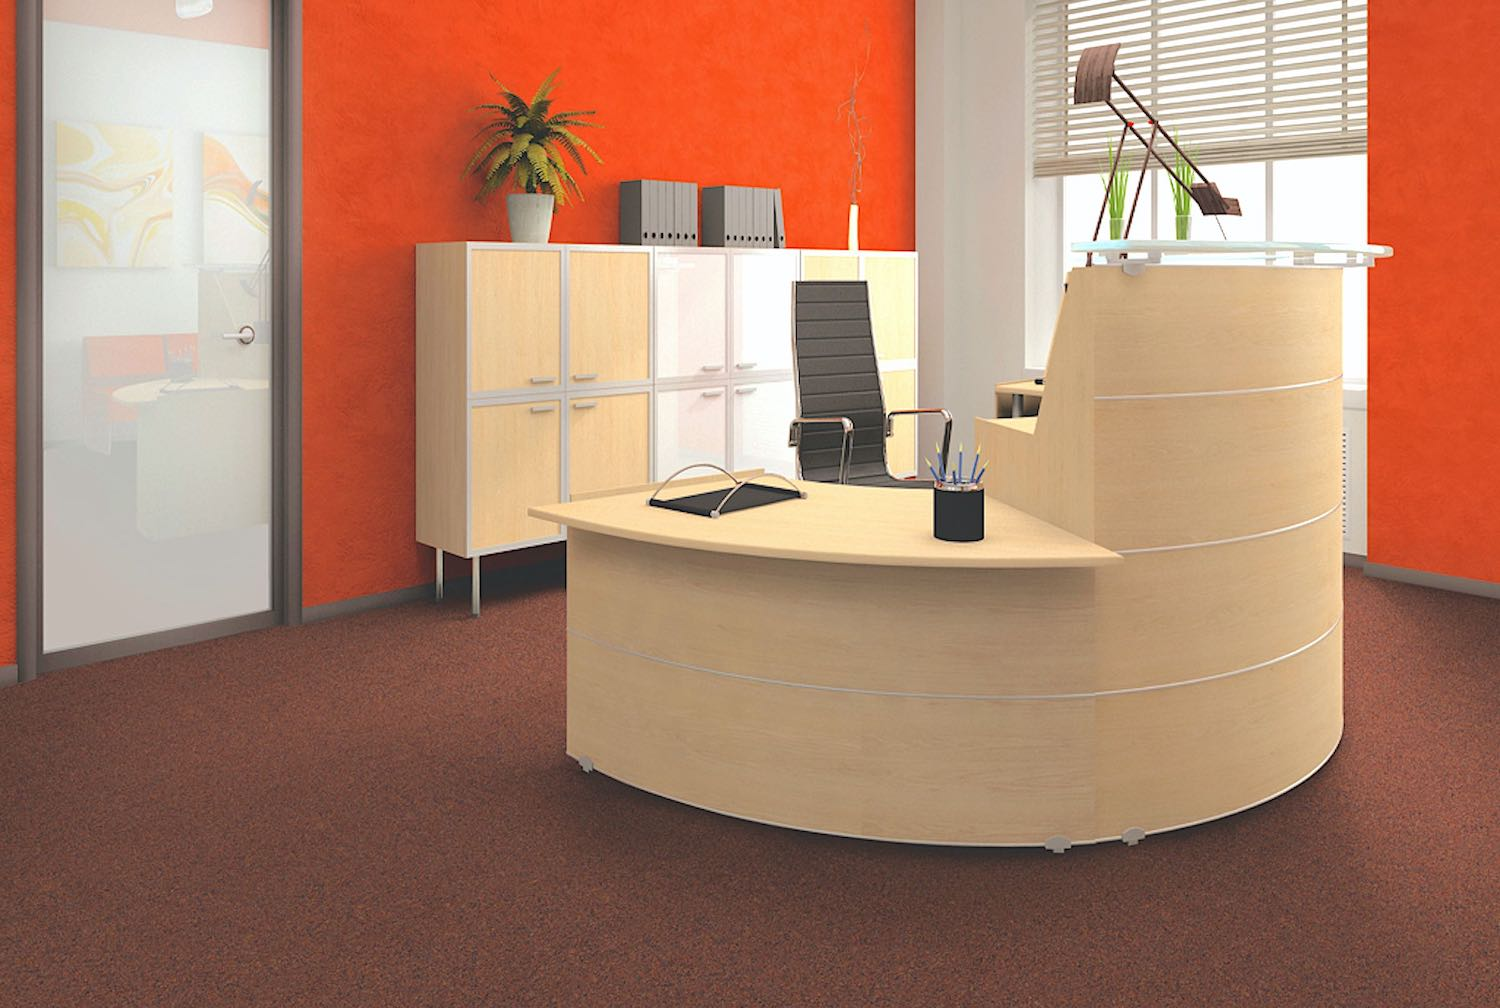 Workspace Cut Pile | Cut Pile Carpet Tiles | Paragon Carpet Tiles | Commercial Carpet Tiles